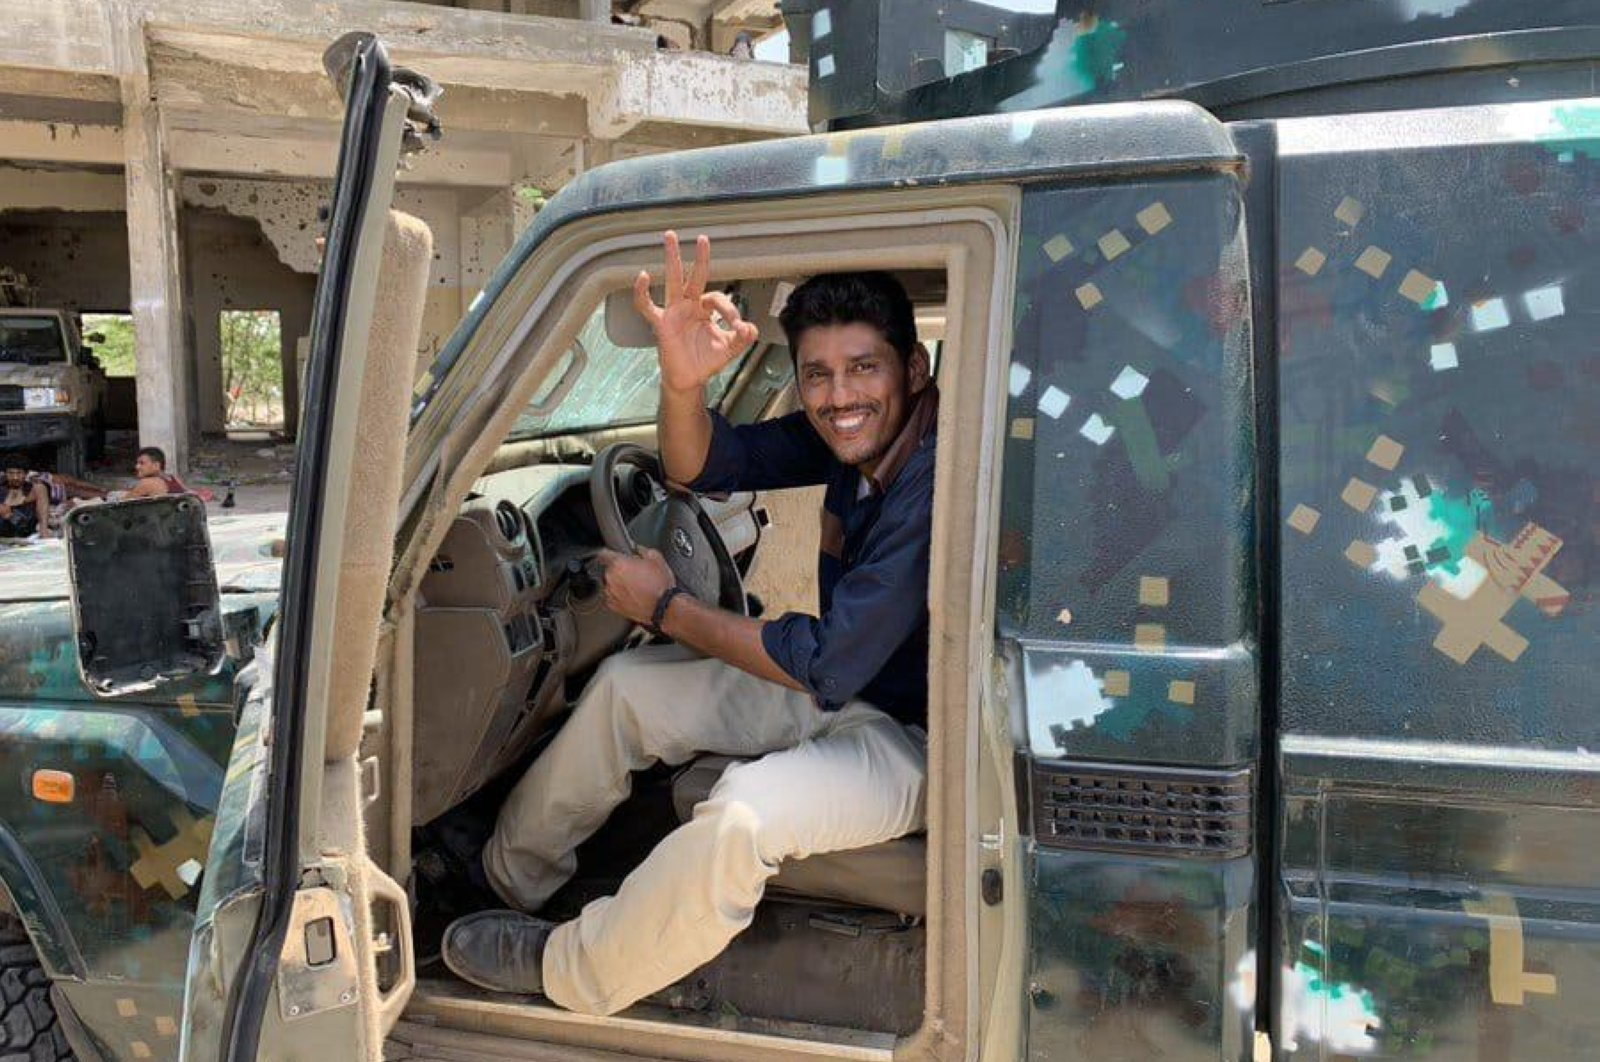 Journalist Nabil al-Quaety, who was killed by a group of armed men outside his home in Aden, Tuesday, June 2, 2020 was a finalist for the United Kingdom's Rory Peck Award in 2016 for his work covering Yemen's war, Aden,Yemen. (AP Photo)